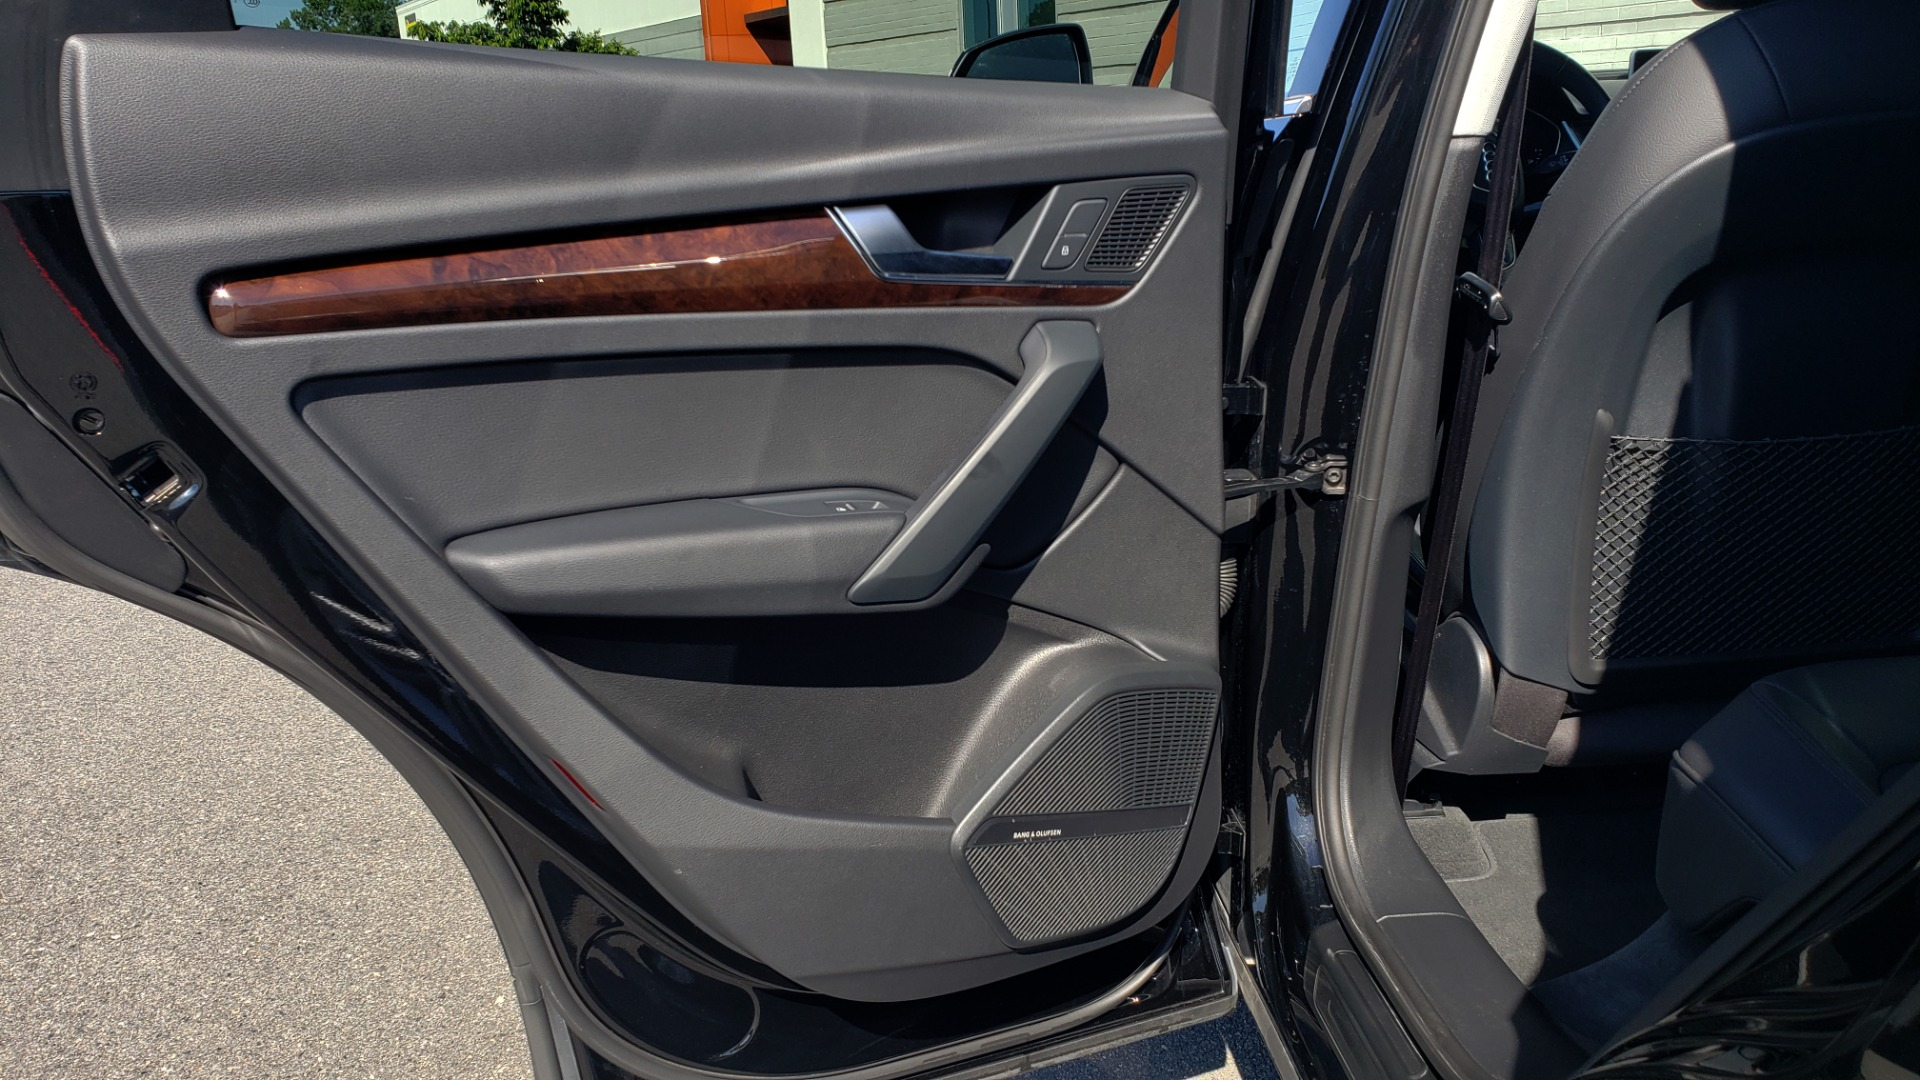 Used 2018 Audi Q5 PREMIUM PLUS / NAV / B&O SND / CLD WTHR / SUNROOF / REARVIEW for sale Sold at Formula Imports in Charlotte NC 28227 62